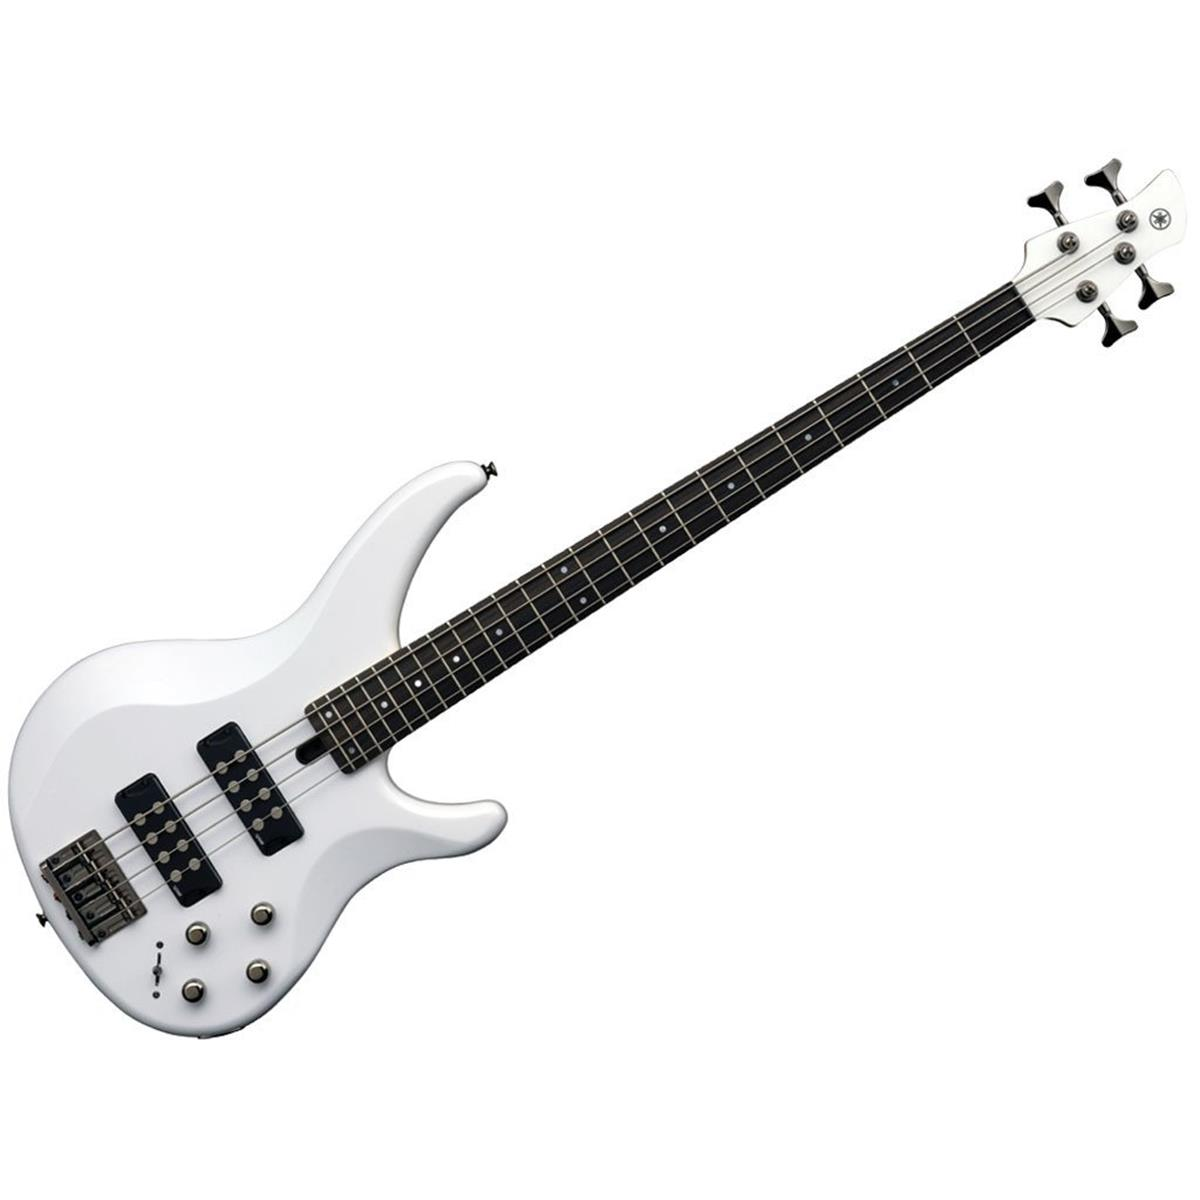 YAMAHA TRBX 304 WH - ELECTRIC BASS WHITE